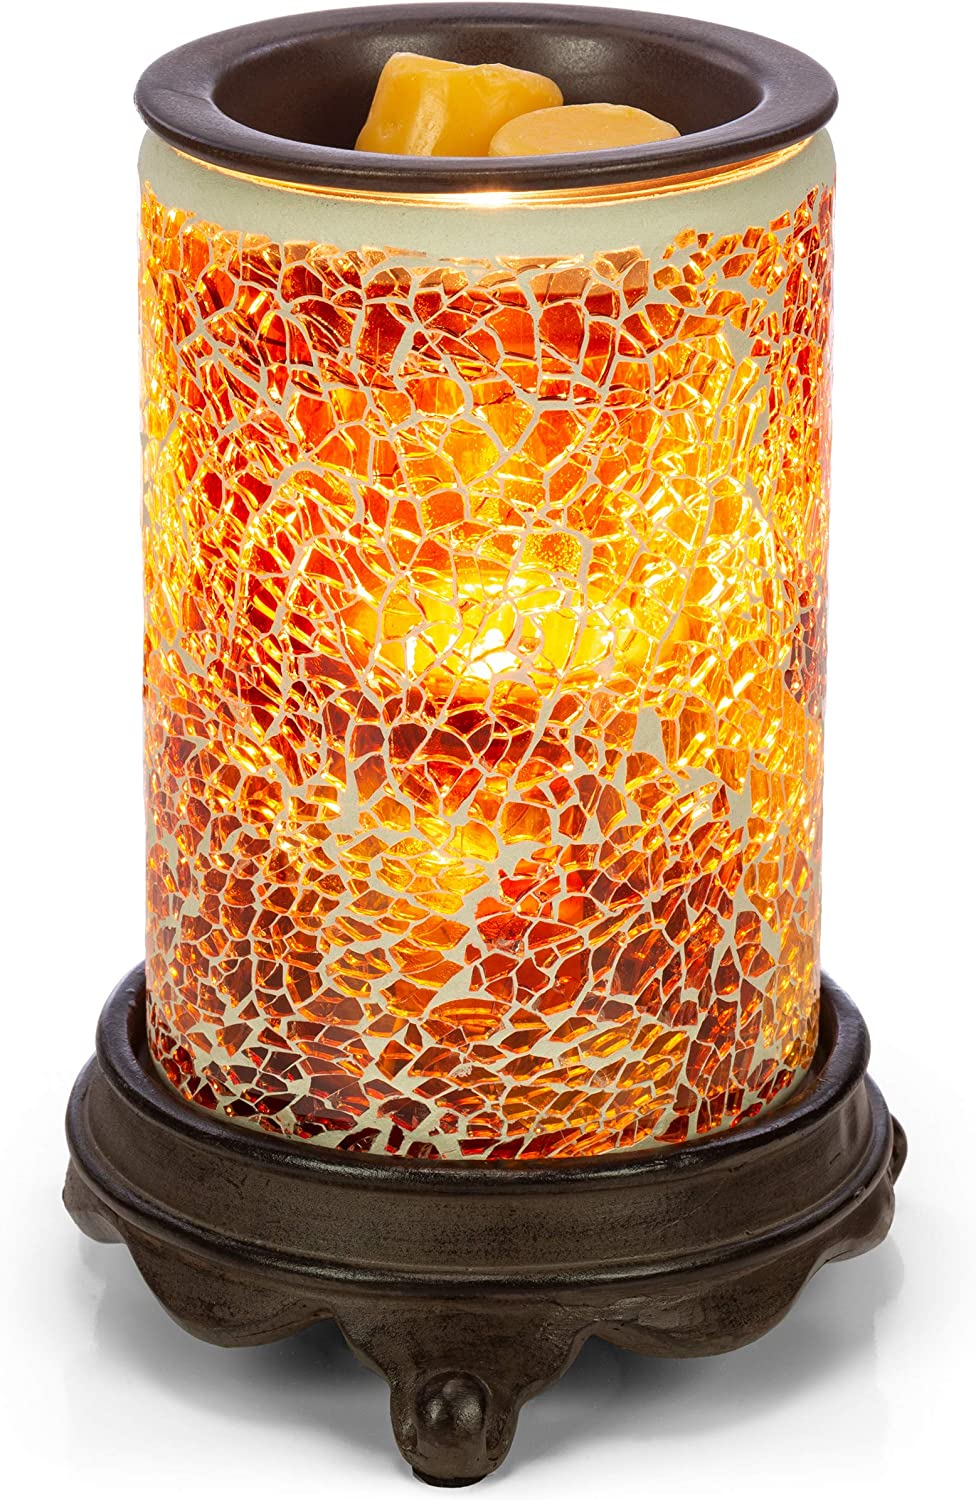 VP Home Mosaic Glass Fragrance Warmer (Glowing Amber)